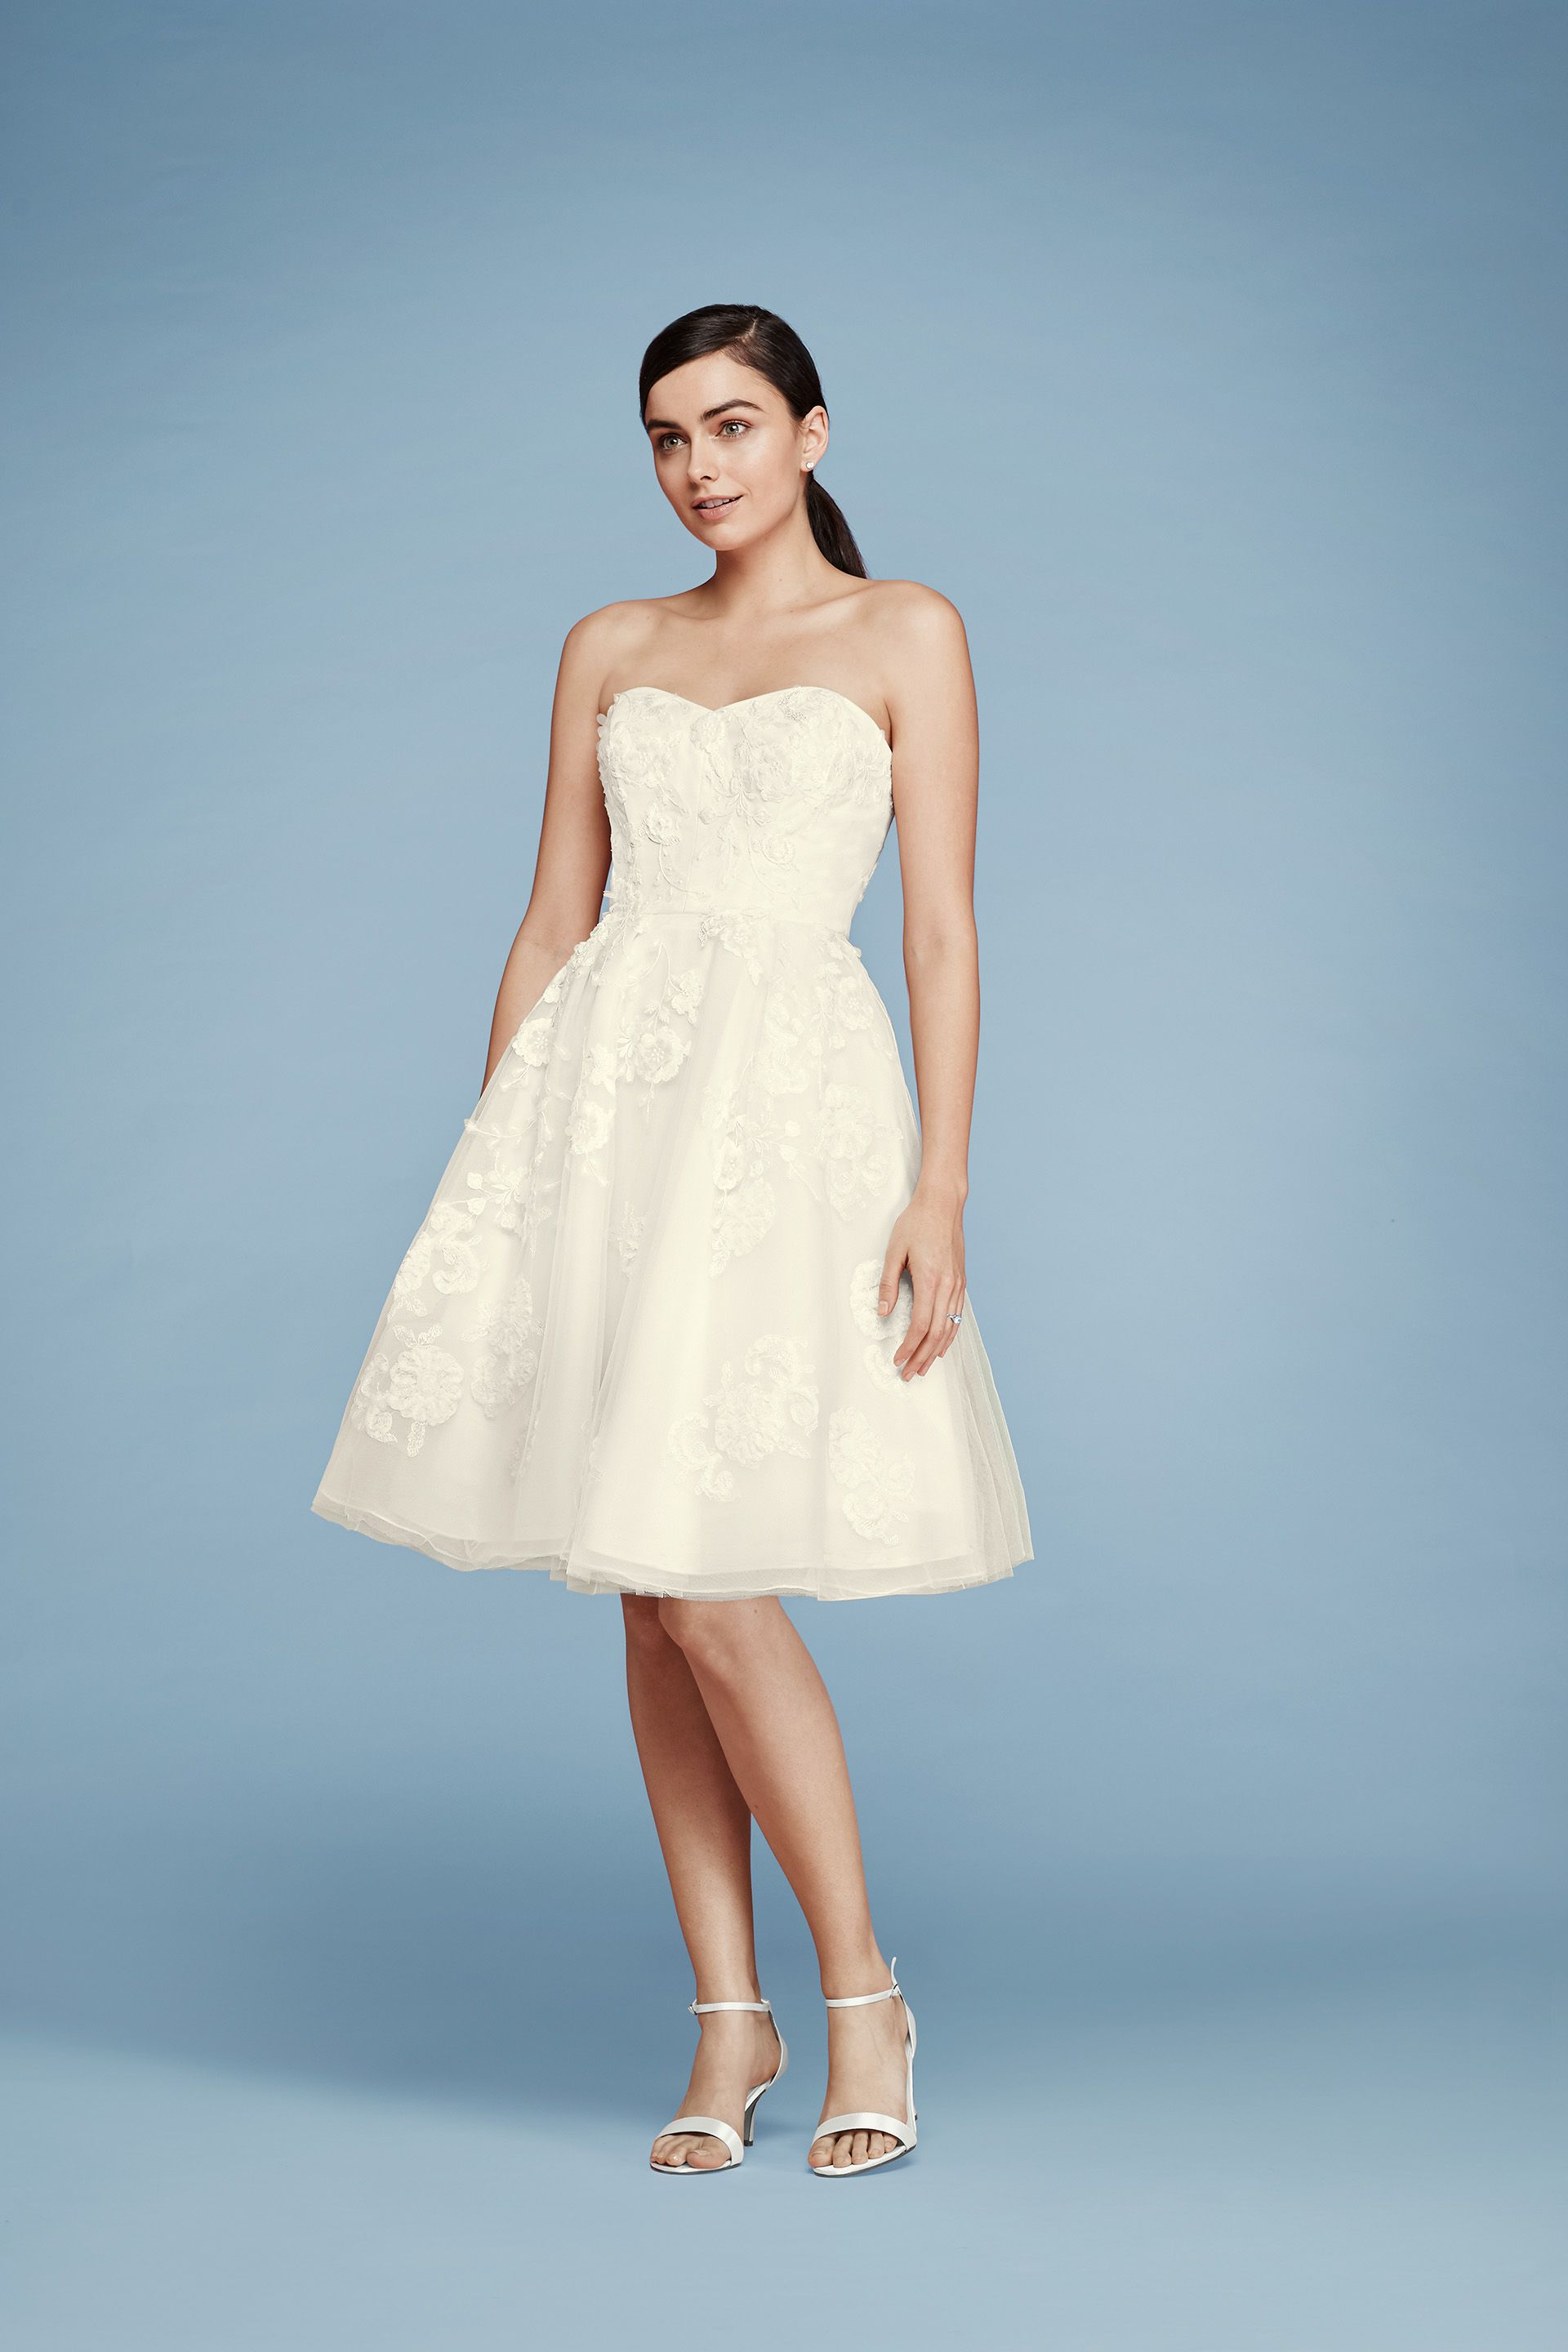 Cheers Cynthia Rowley Short Lace Strapless Wedding Dress | weddings ...